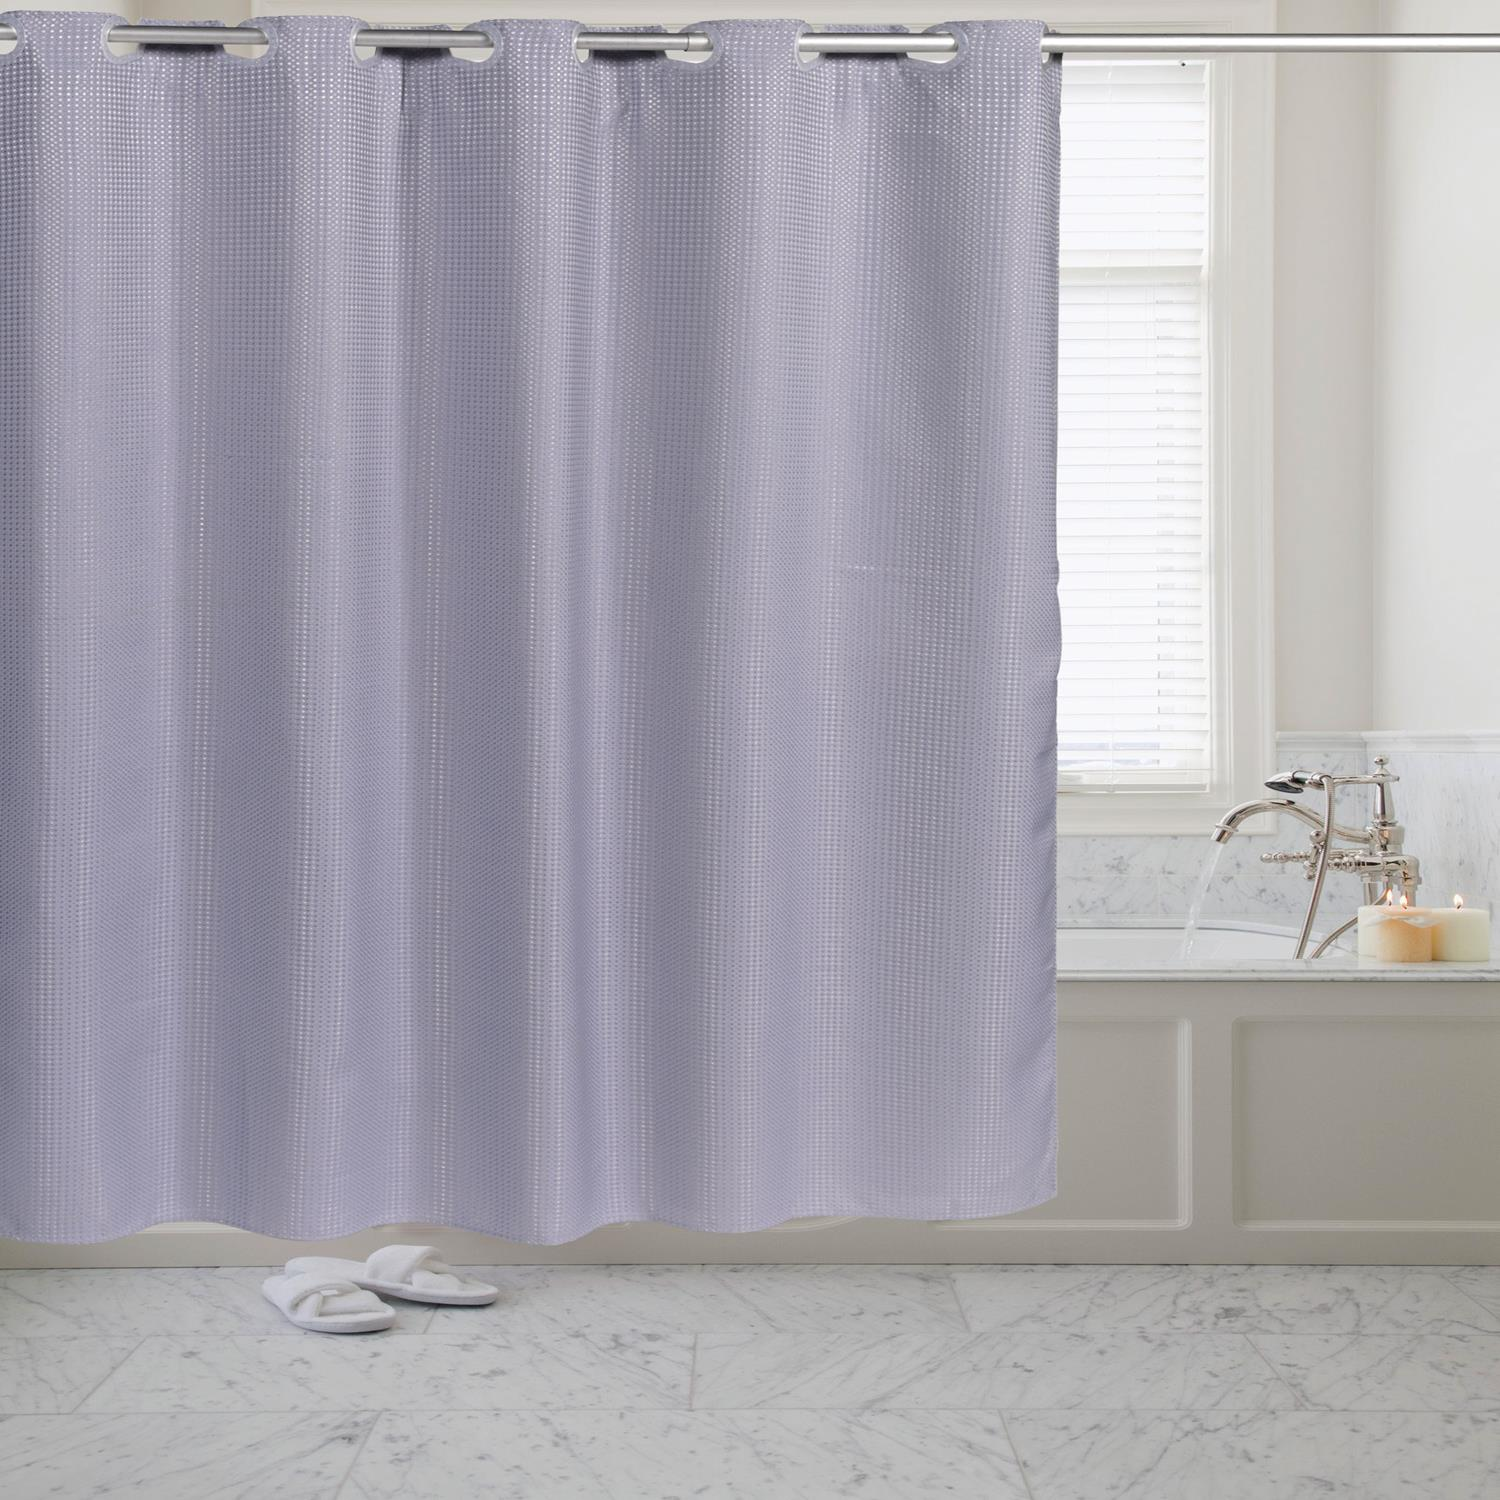 Details About Carnation Home Pre Hookedt Waffle Weave Fabric Shower Curtain 70x72 Pewter